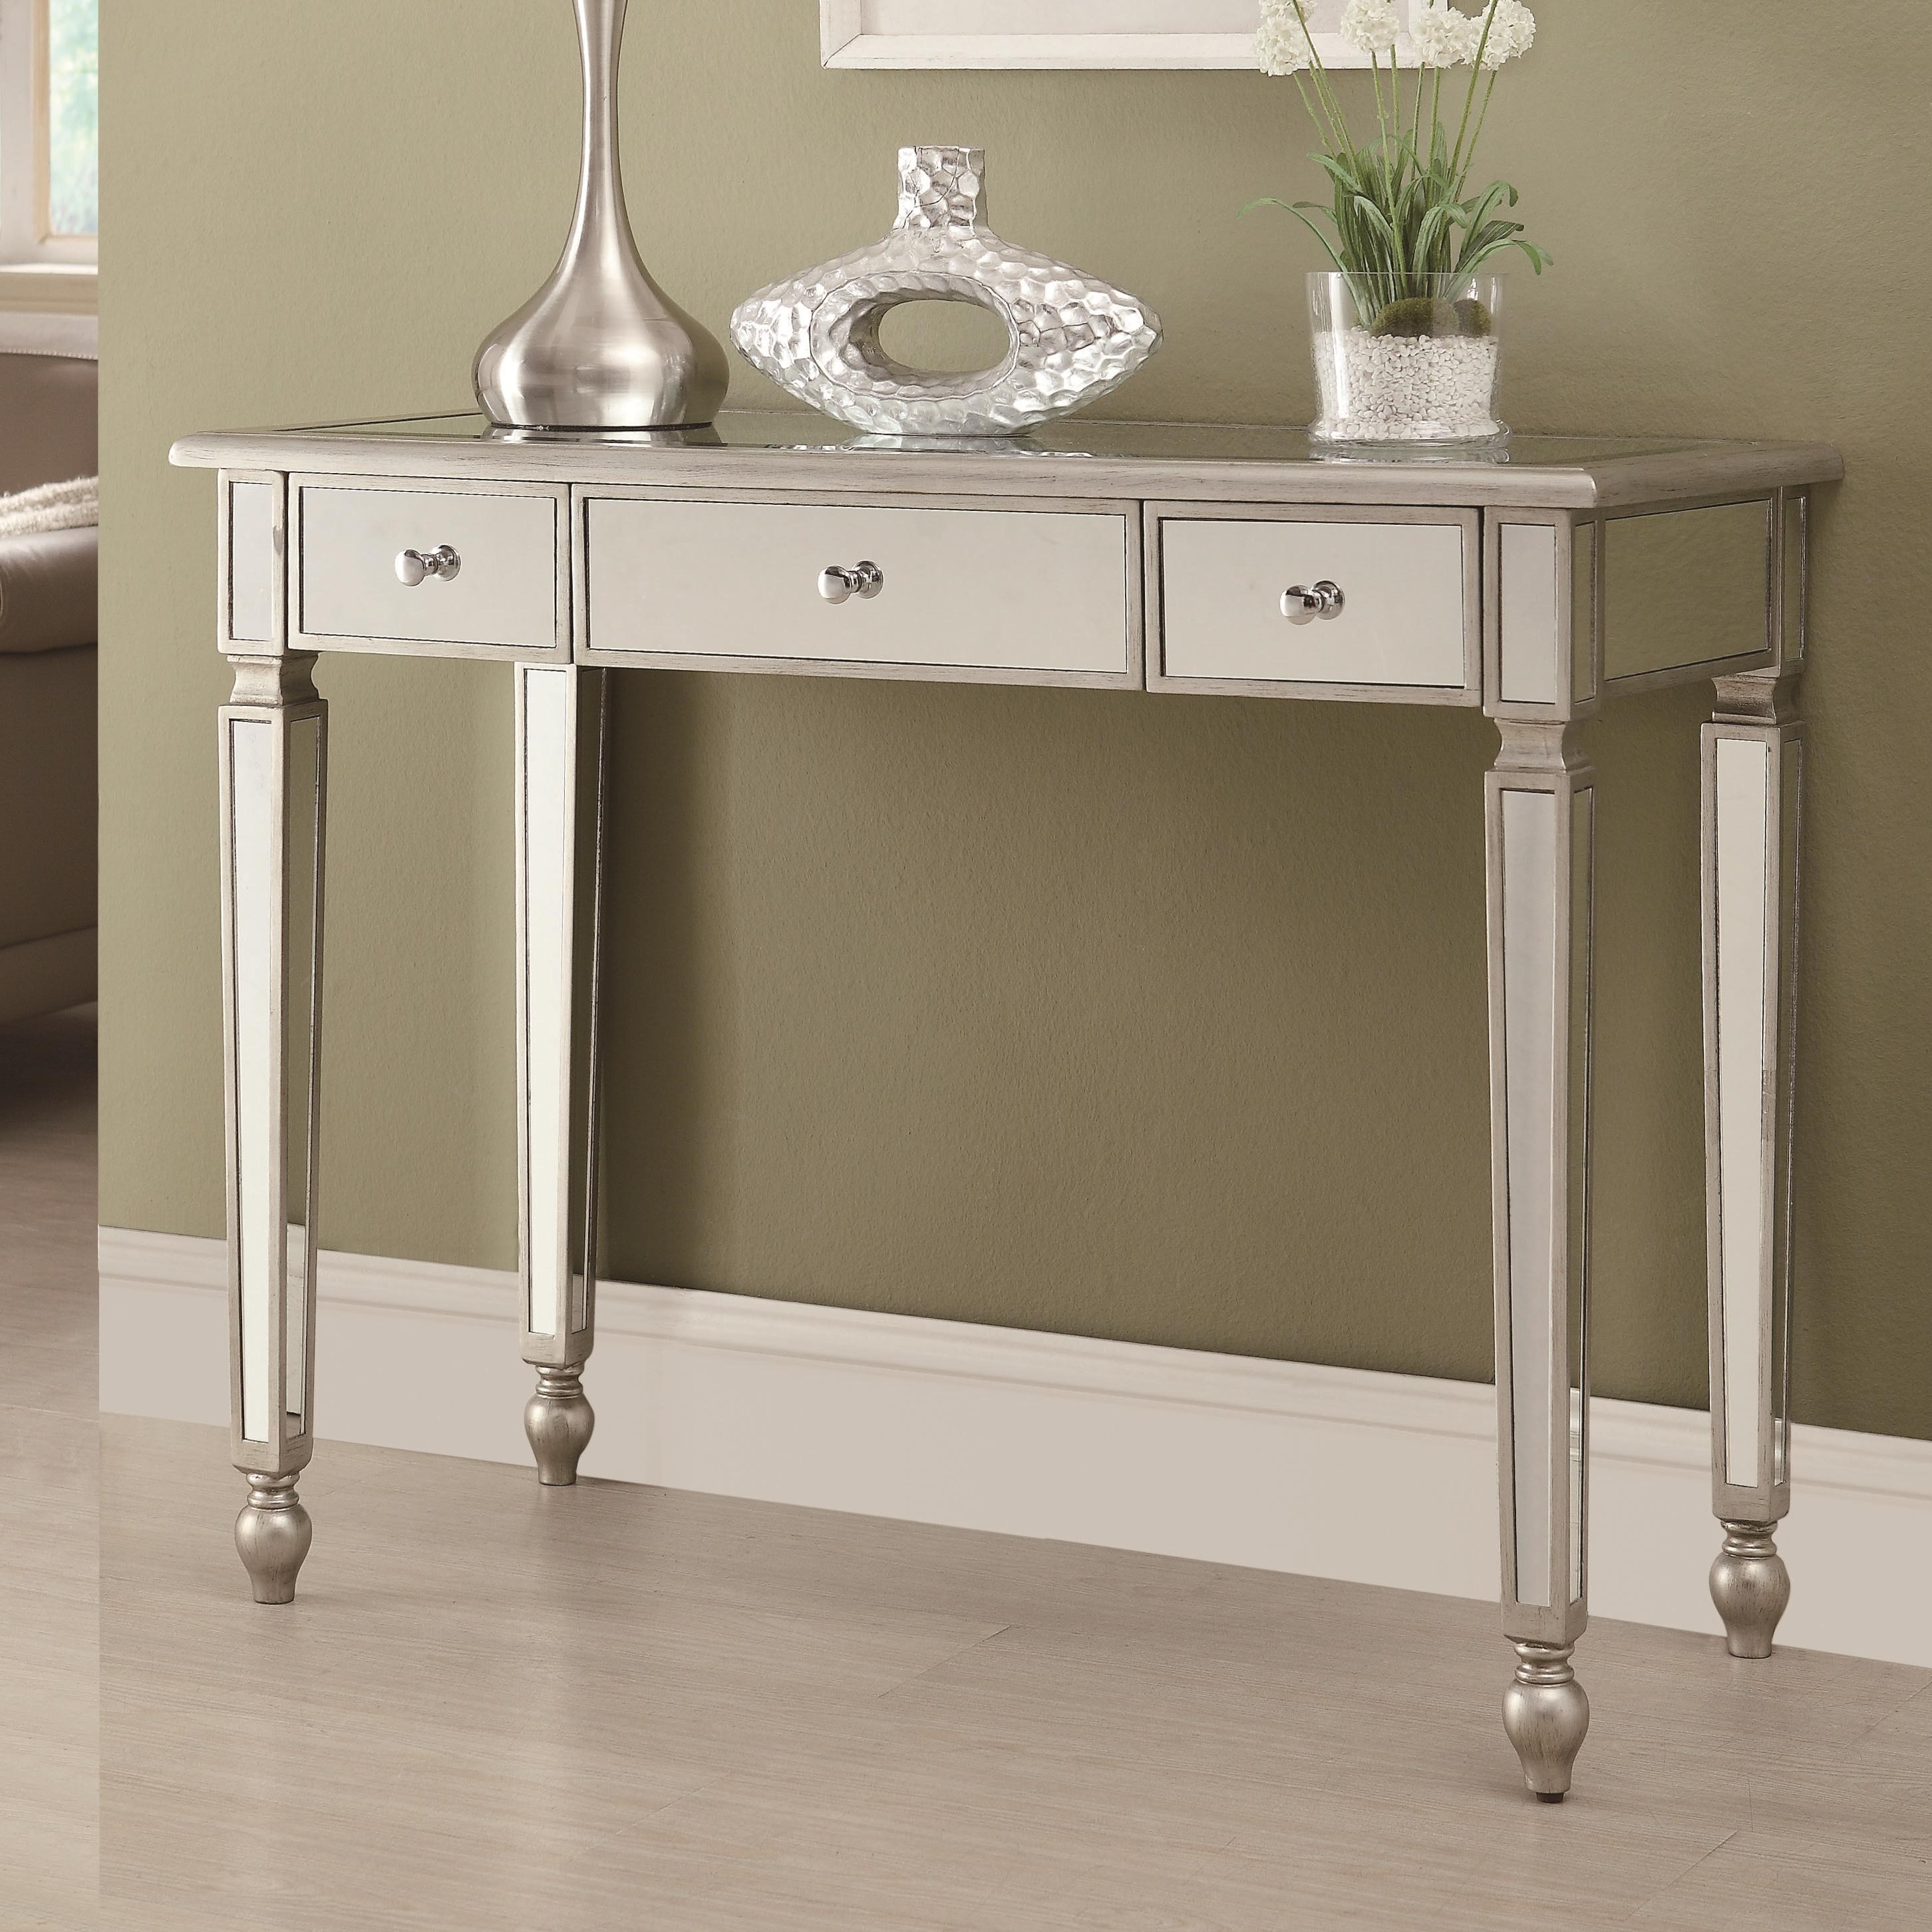 Incroyable Coaster Accent Tables Contemporary Mirrored Sofa Table   Coaster Fine  Furniture